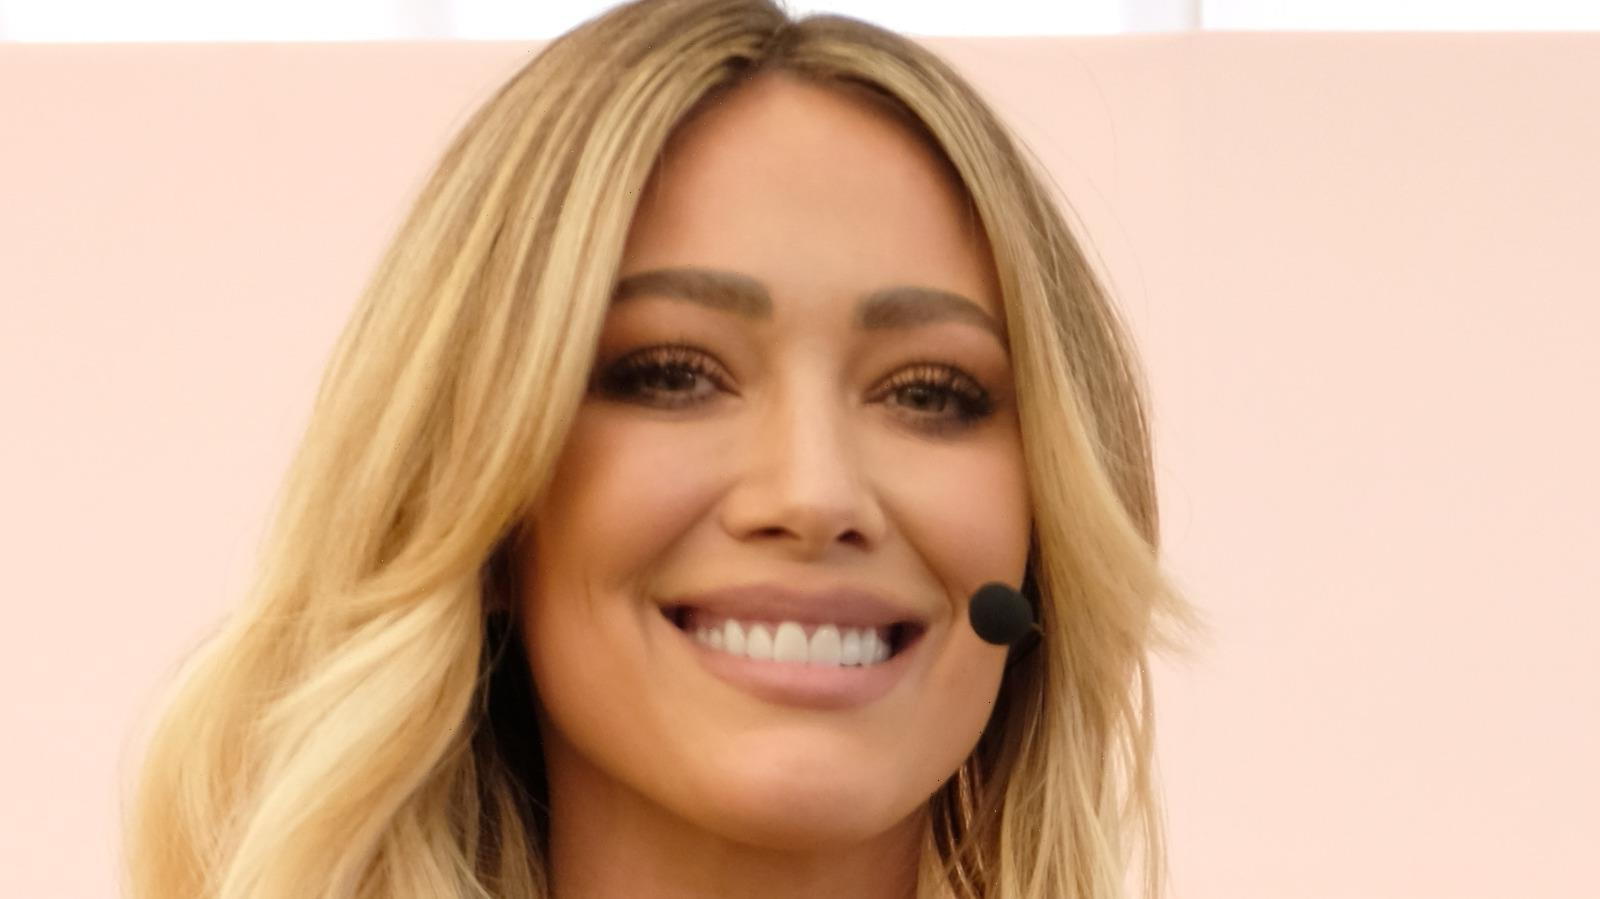 The Truth About Hilary Duff's New TV Show